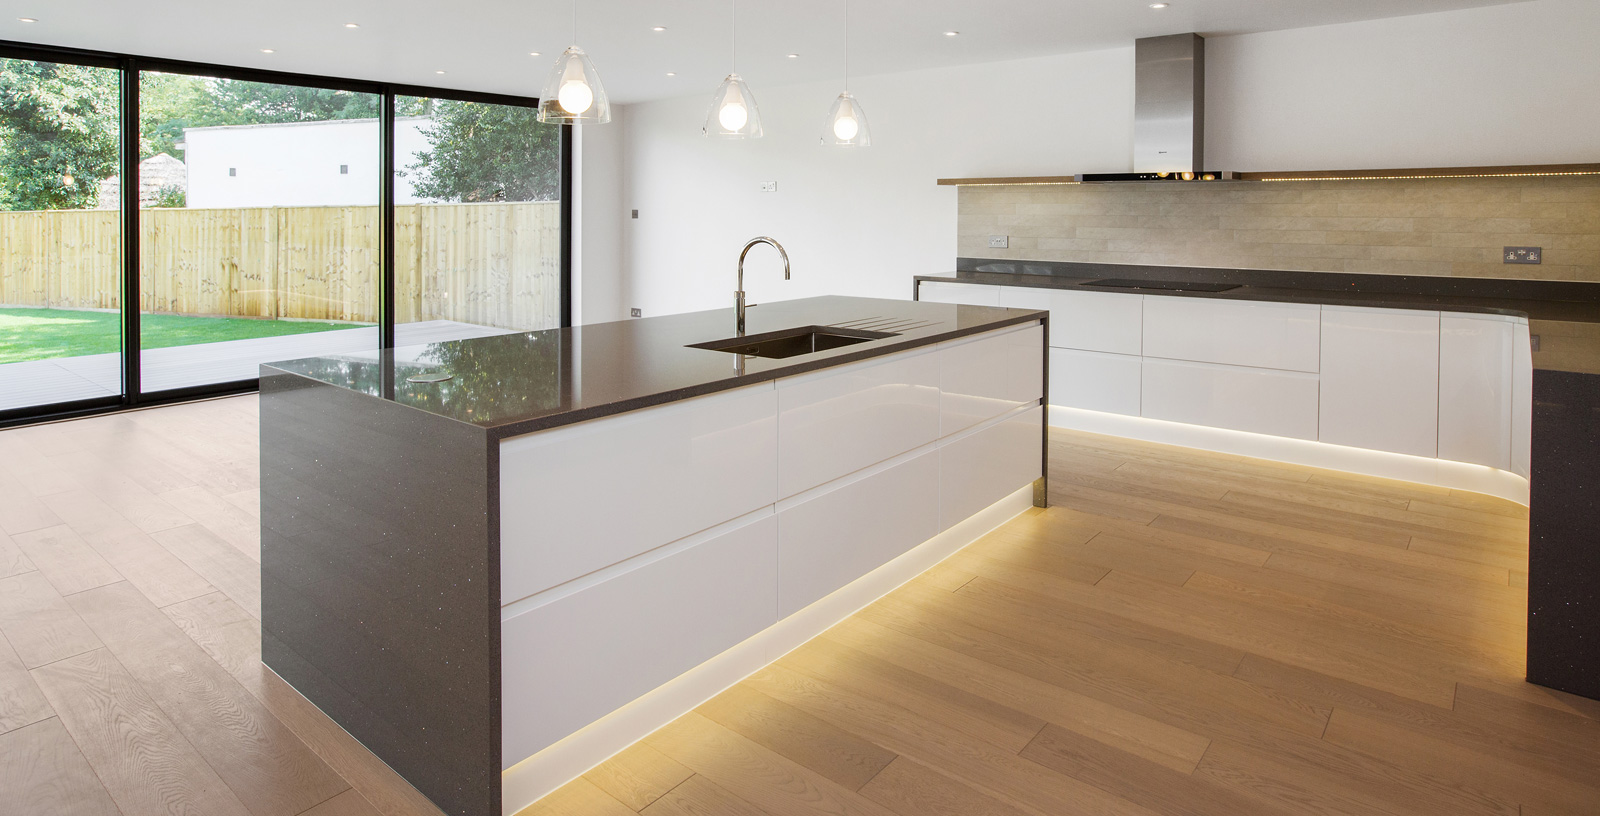 iRewire are rewiring experts for a professional finish - creating stunning living spaces